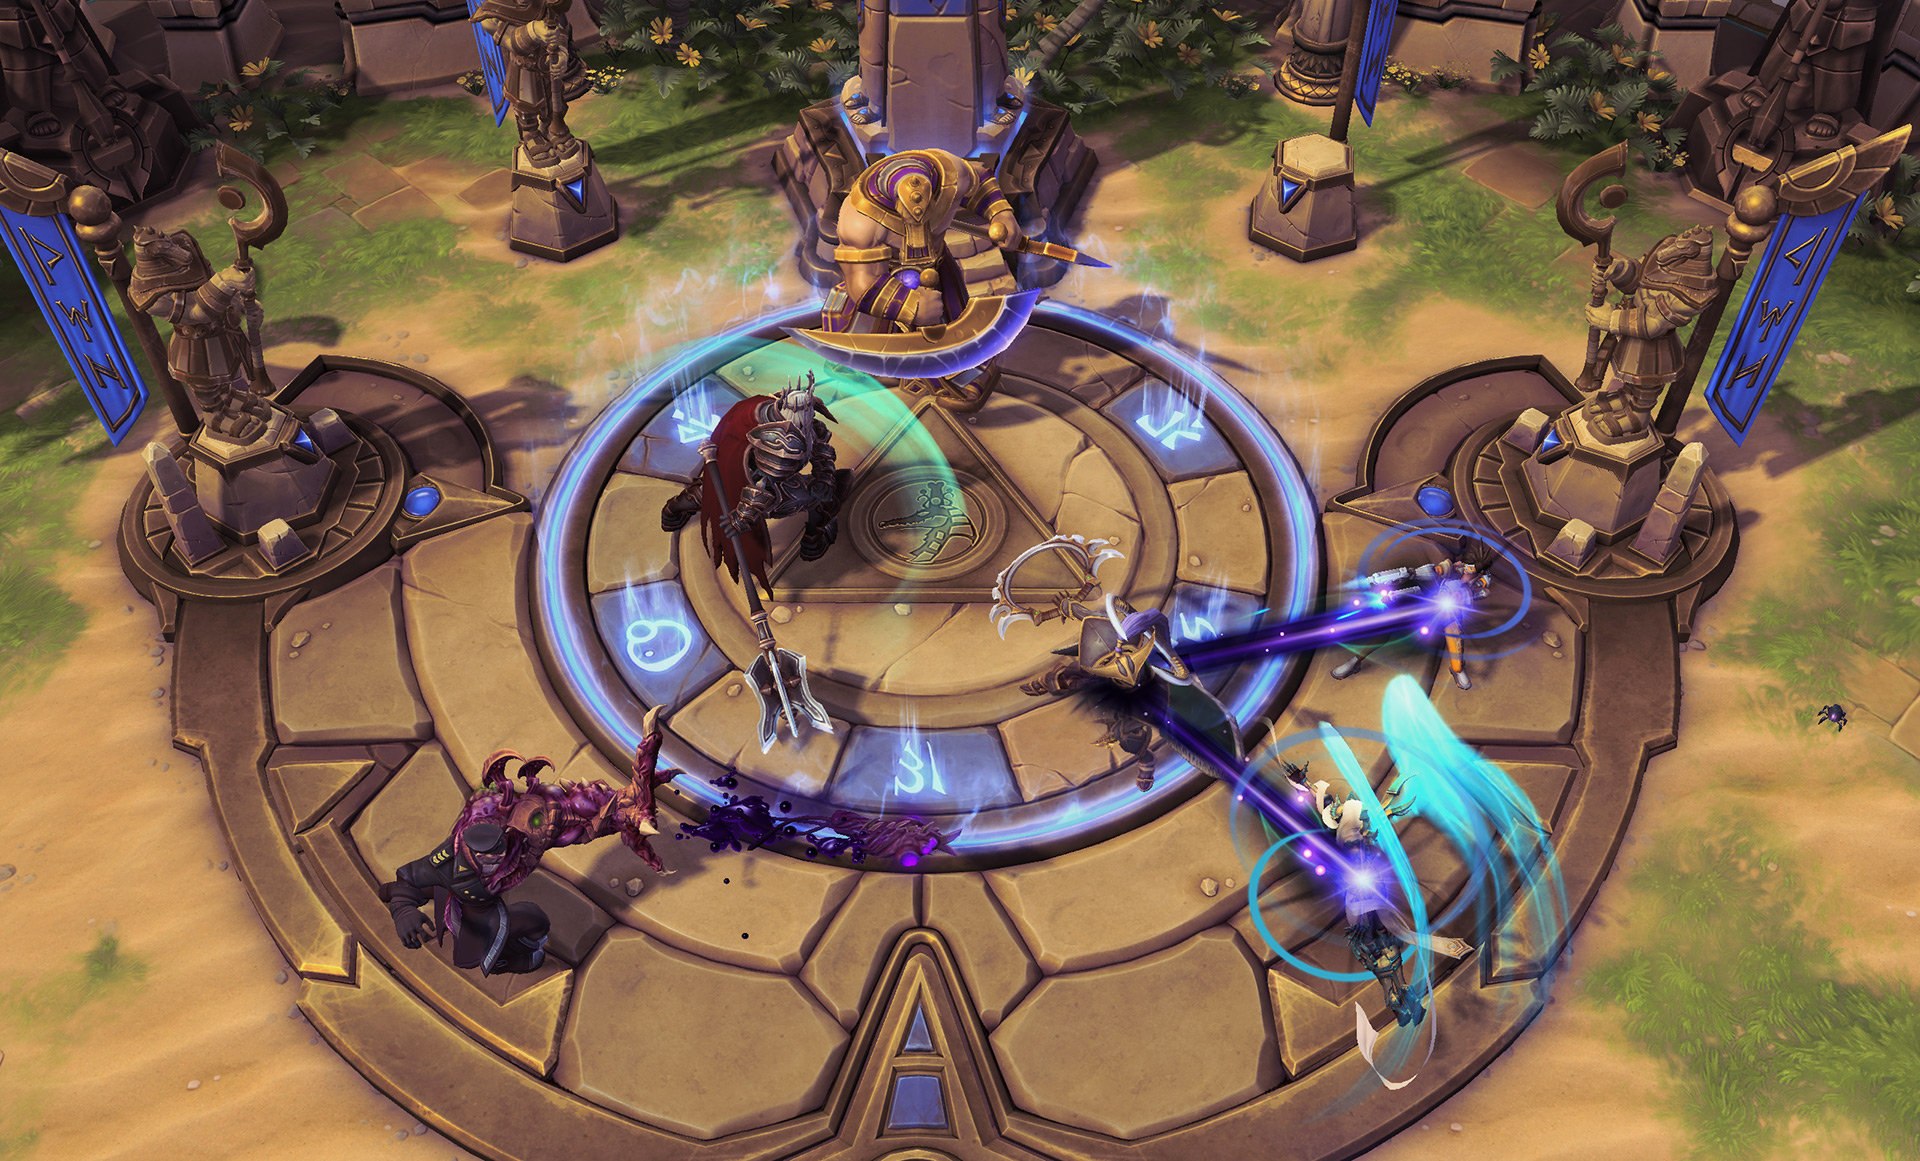 Maiev_Gameplay_W.jpg